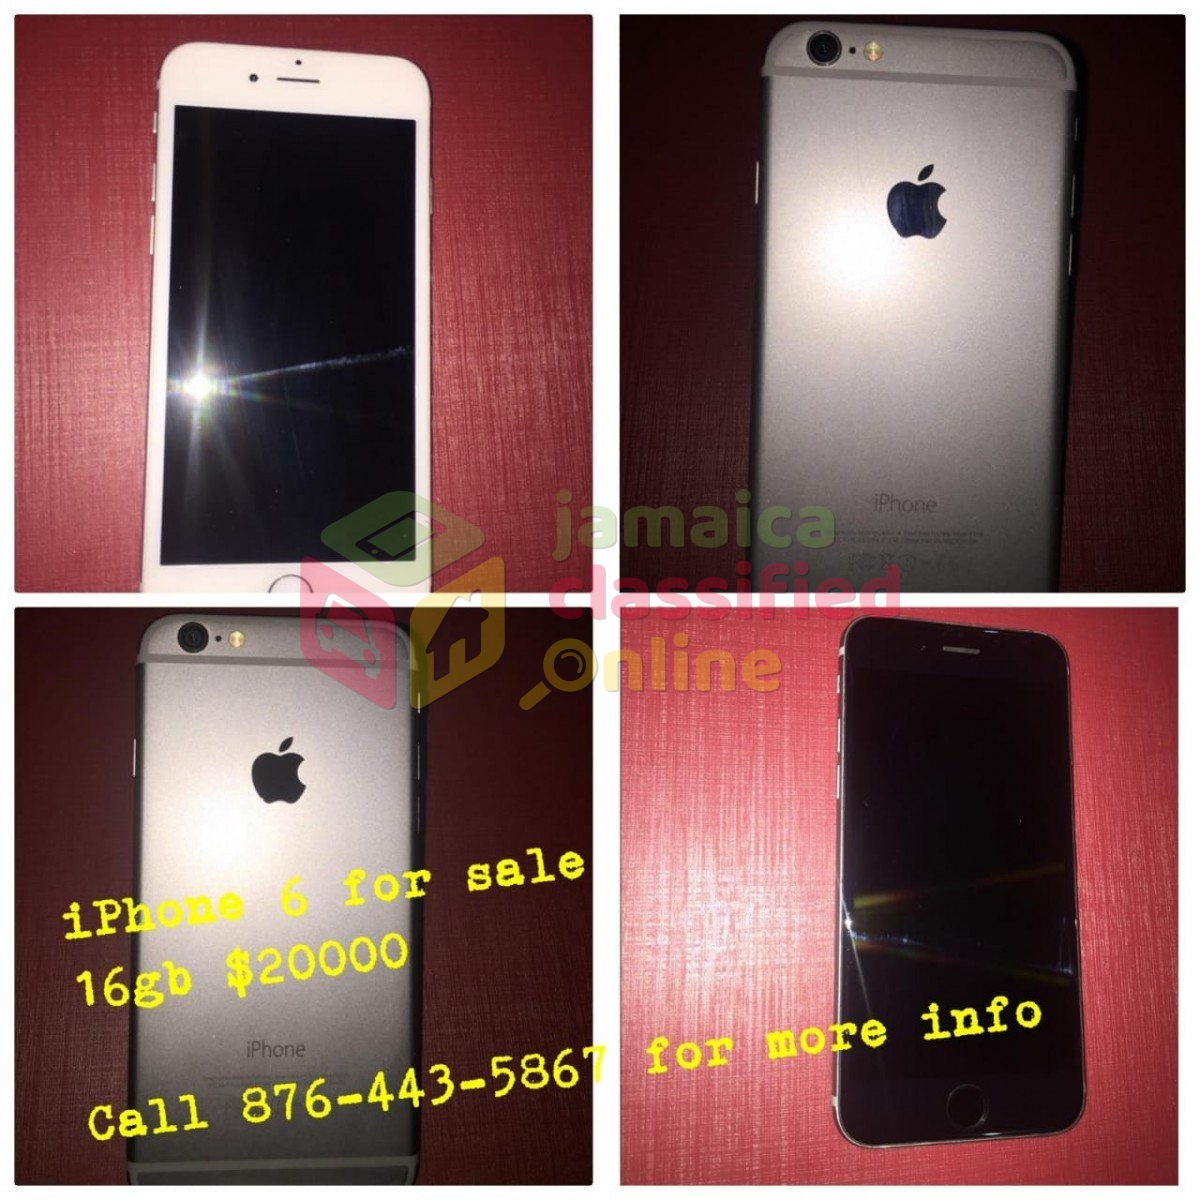 Renting Iphone: IPhone 6 16gb For Sale In Mandeville Manchester